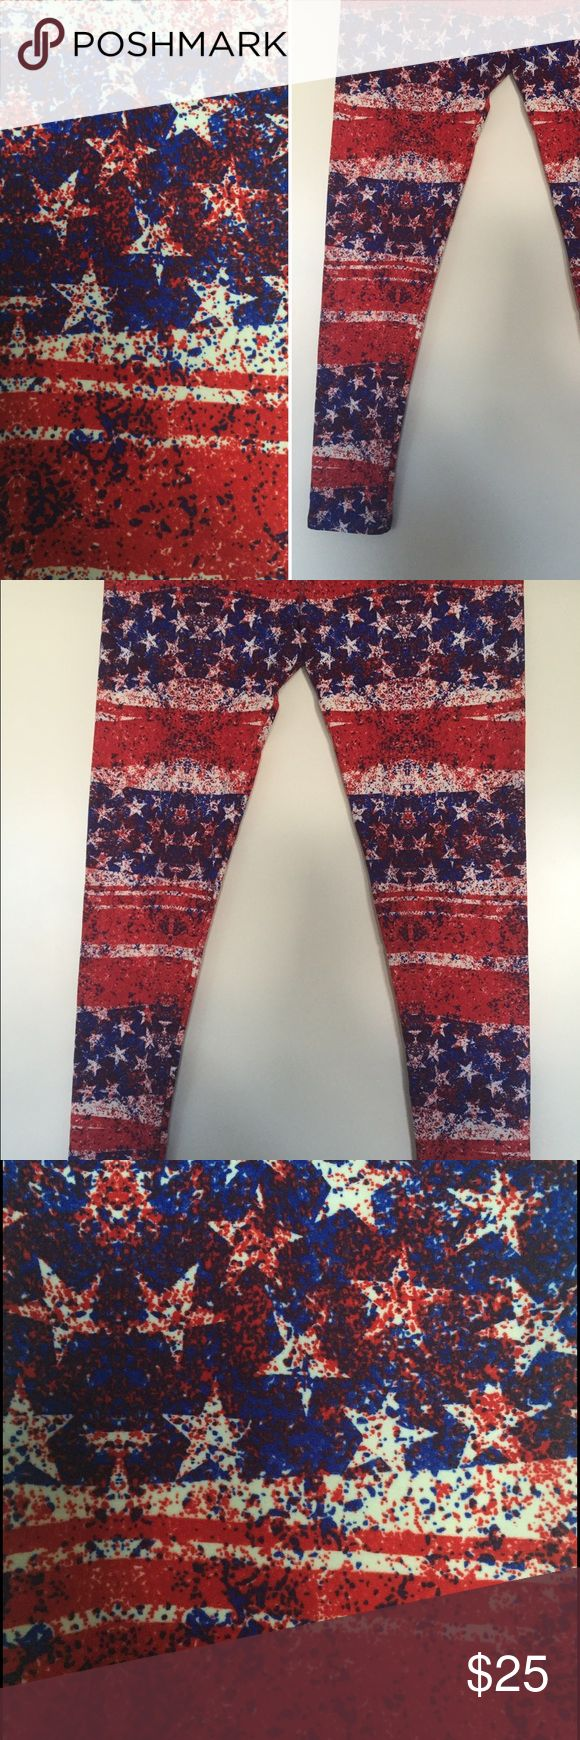 LuLaRoe American Flag Leggings :: TC :: BNWT BNWT LuLaRoe buttery soft leggings from 2016 Americana capsule collection. American flag pattern. TC with tags. LuLaRoe Pants Leggings